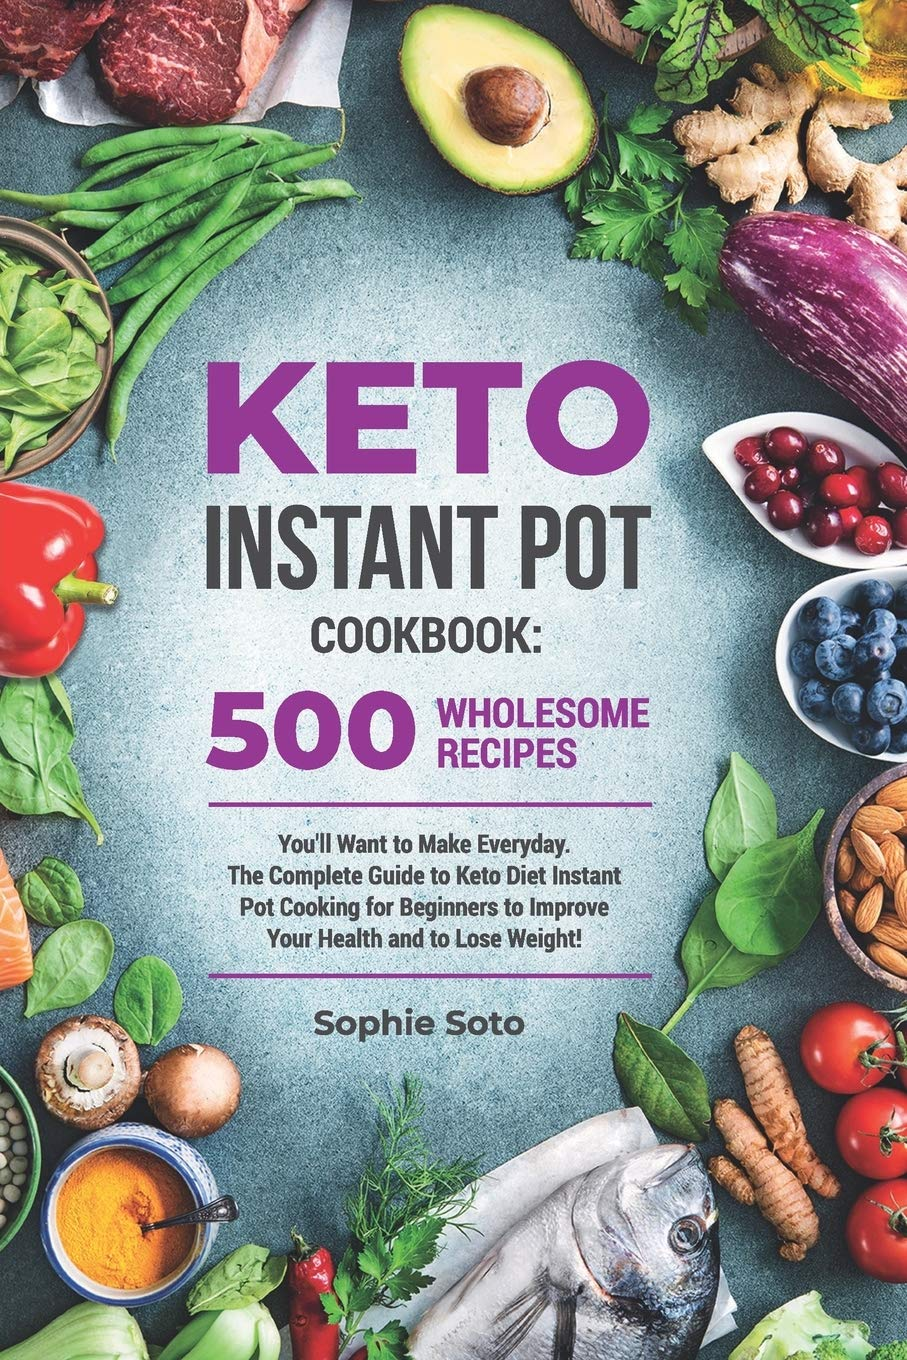 Keto Instant Pot Cookbook: 500 Wholesome Recipes You'll Want to Make Everyday. The Complete Guide to Keto Diet Instant Pot Cooking for Beginners to ... and to Lose Weight (Keto Healthy Lifestyle) pdf epub